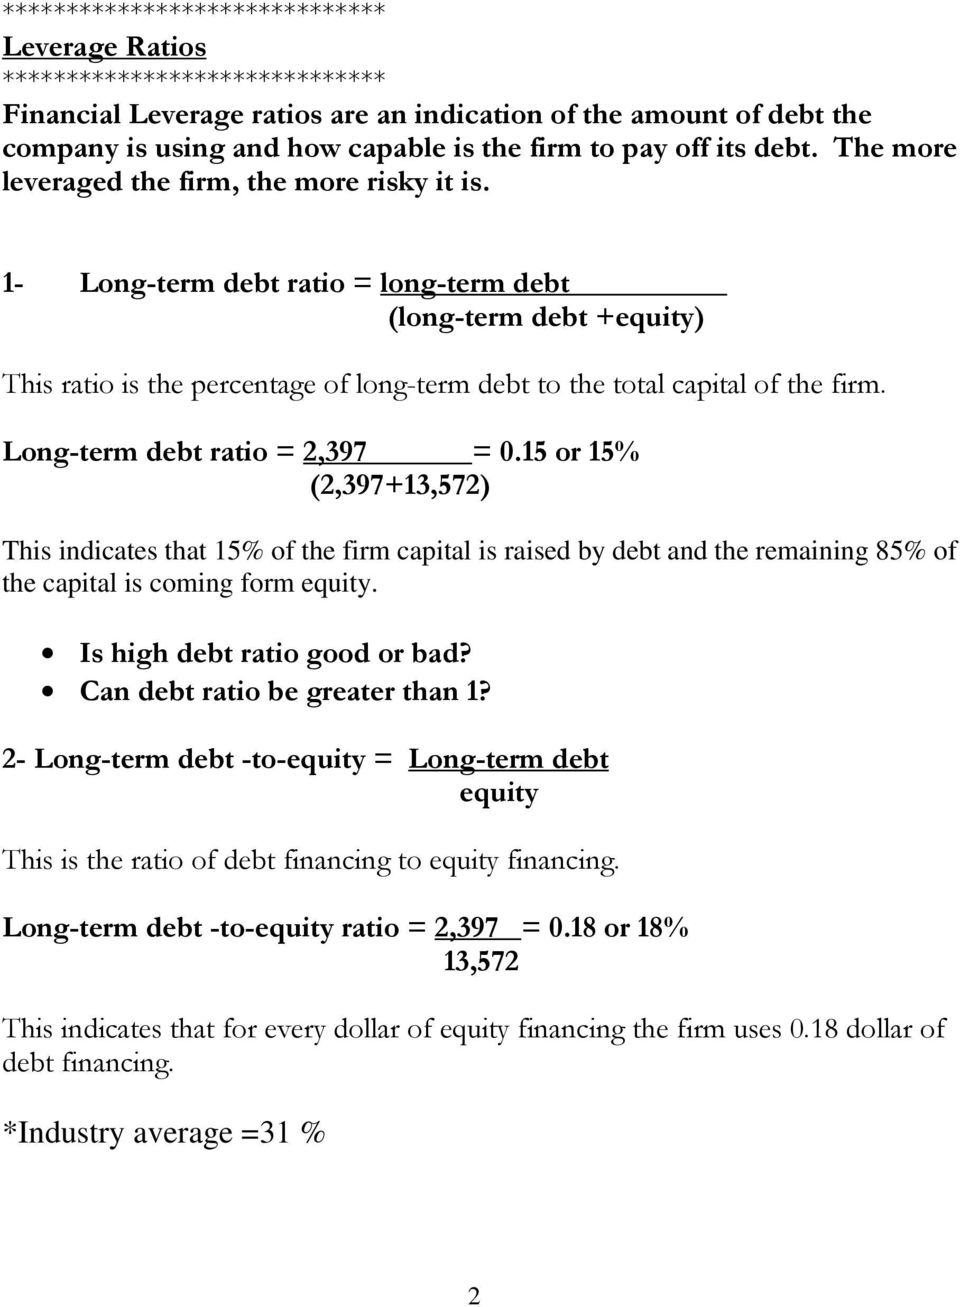 1- Long-term debt ratio = long-term debt (long-term debt +equity) This ratio is the percentage of long-term debt to the total capital of the firm. Long-term debt ratio = 2,397 = 0.